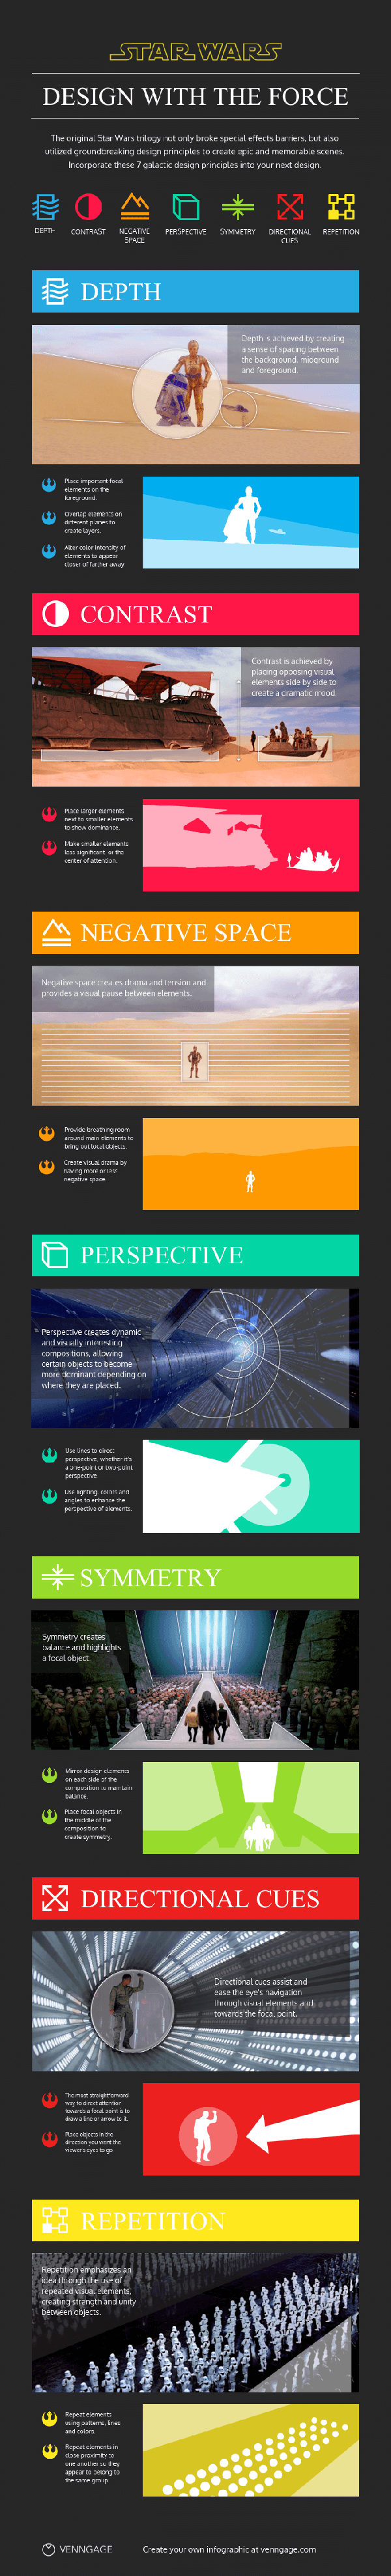 Design Principles Infographic Template